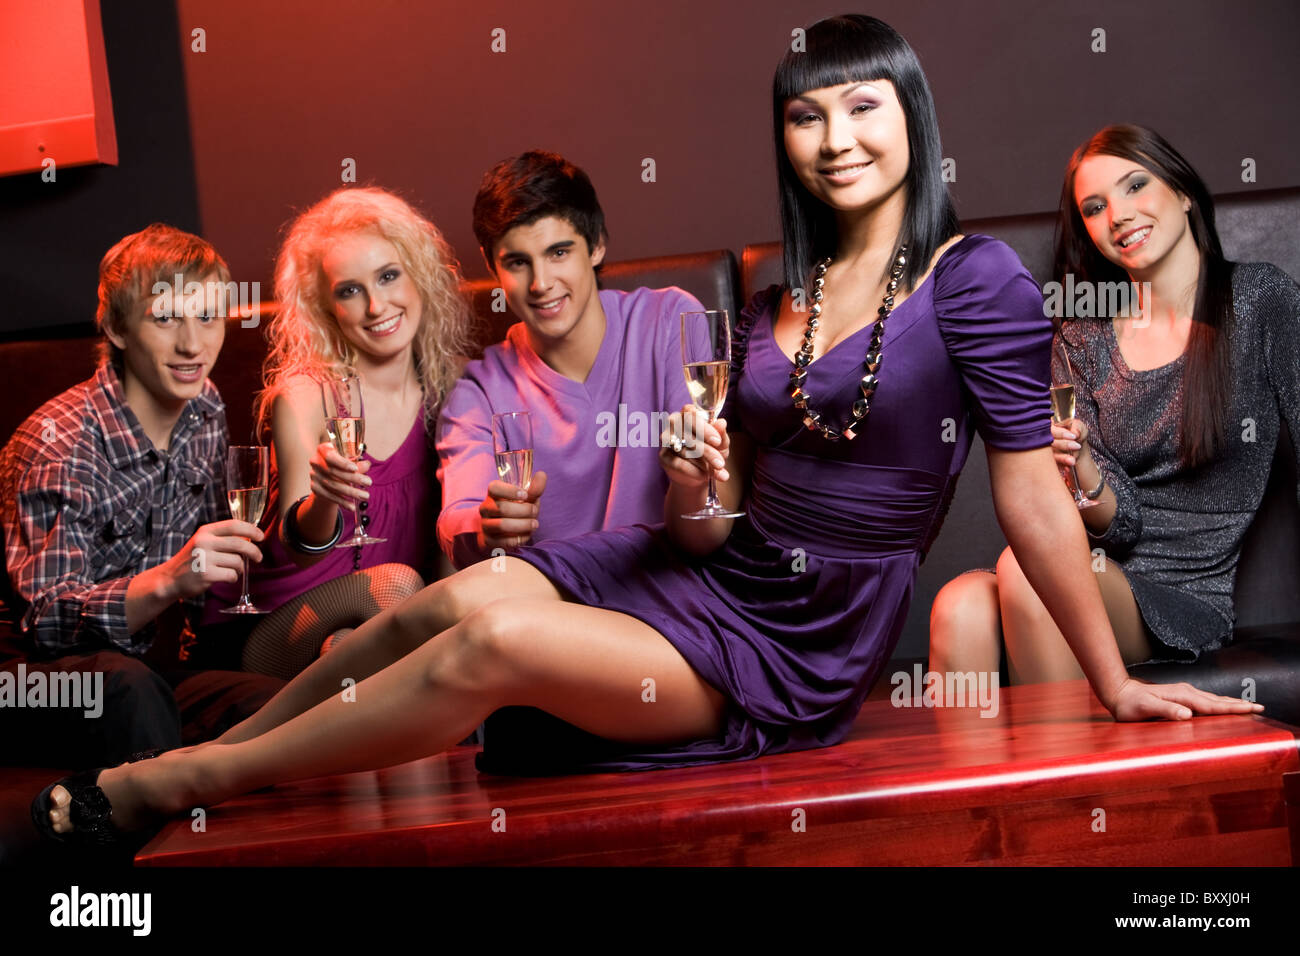 Image of glamorous woman with champagne sitting on table on background of her friends - Stock Image